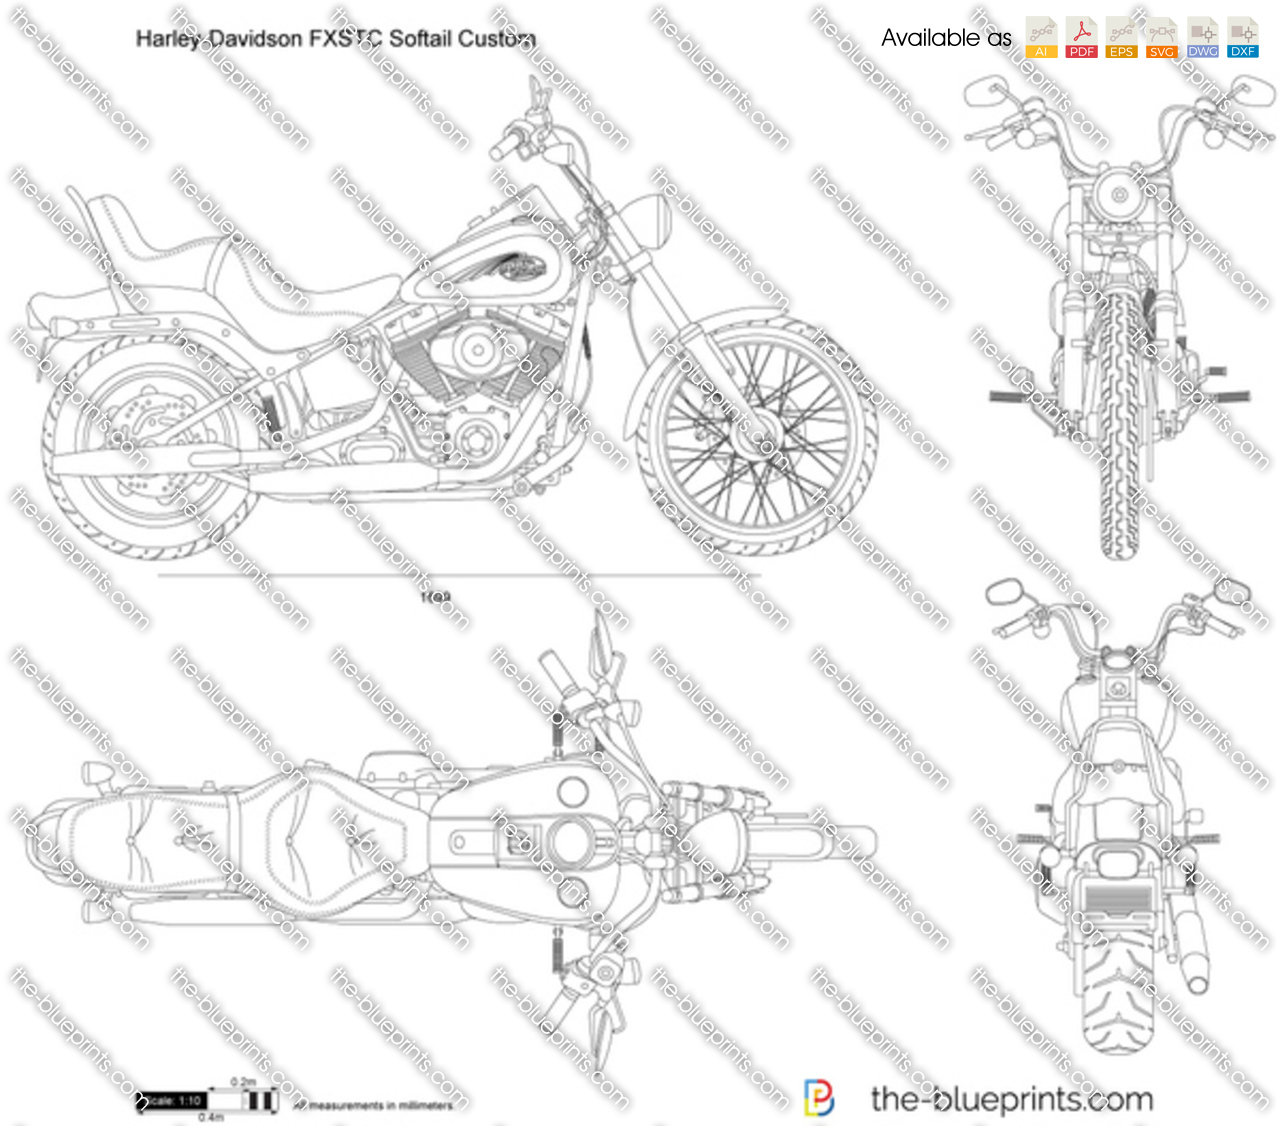 The blueprints vector drawing harley davidson fxstc harley davidson fxstc softail custom malvernweather